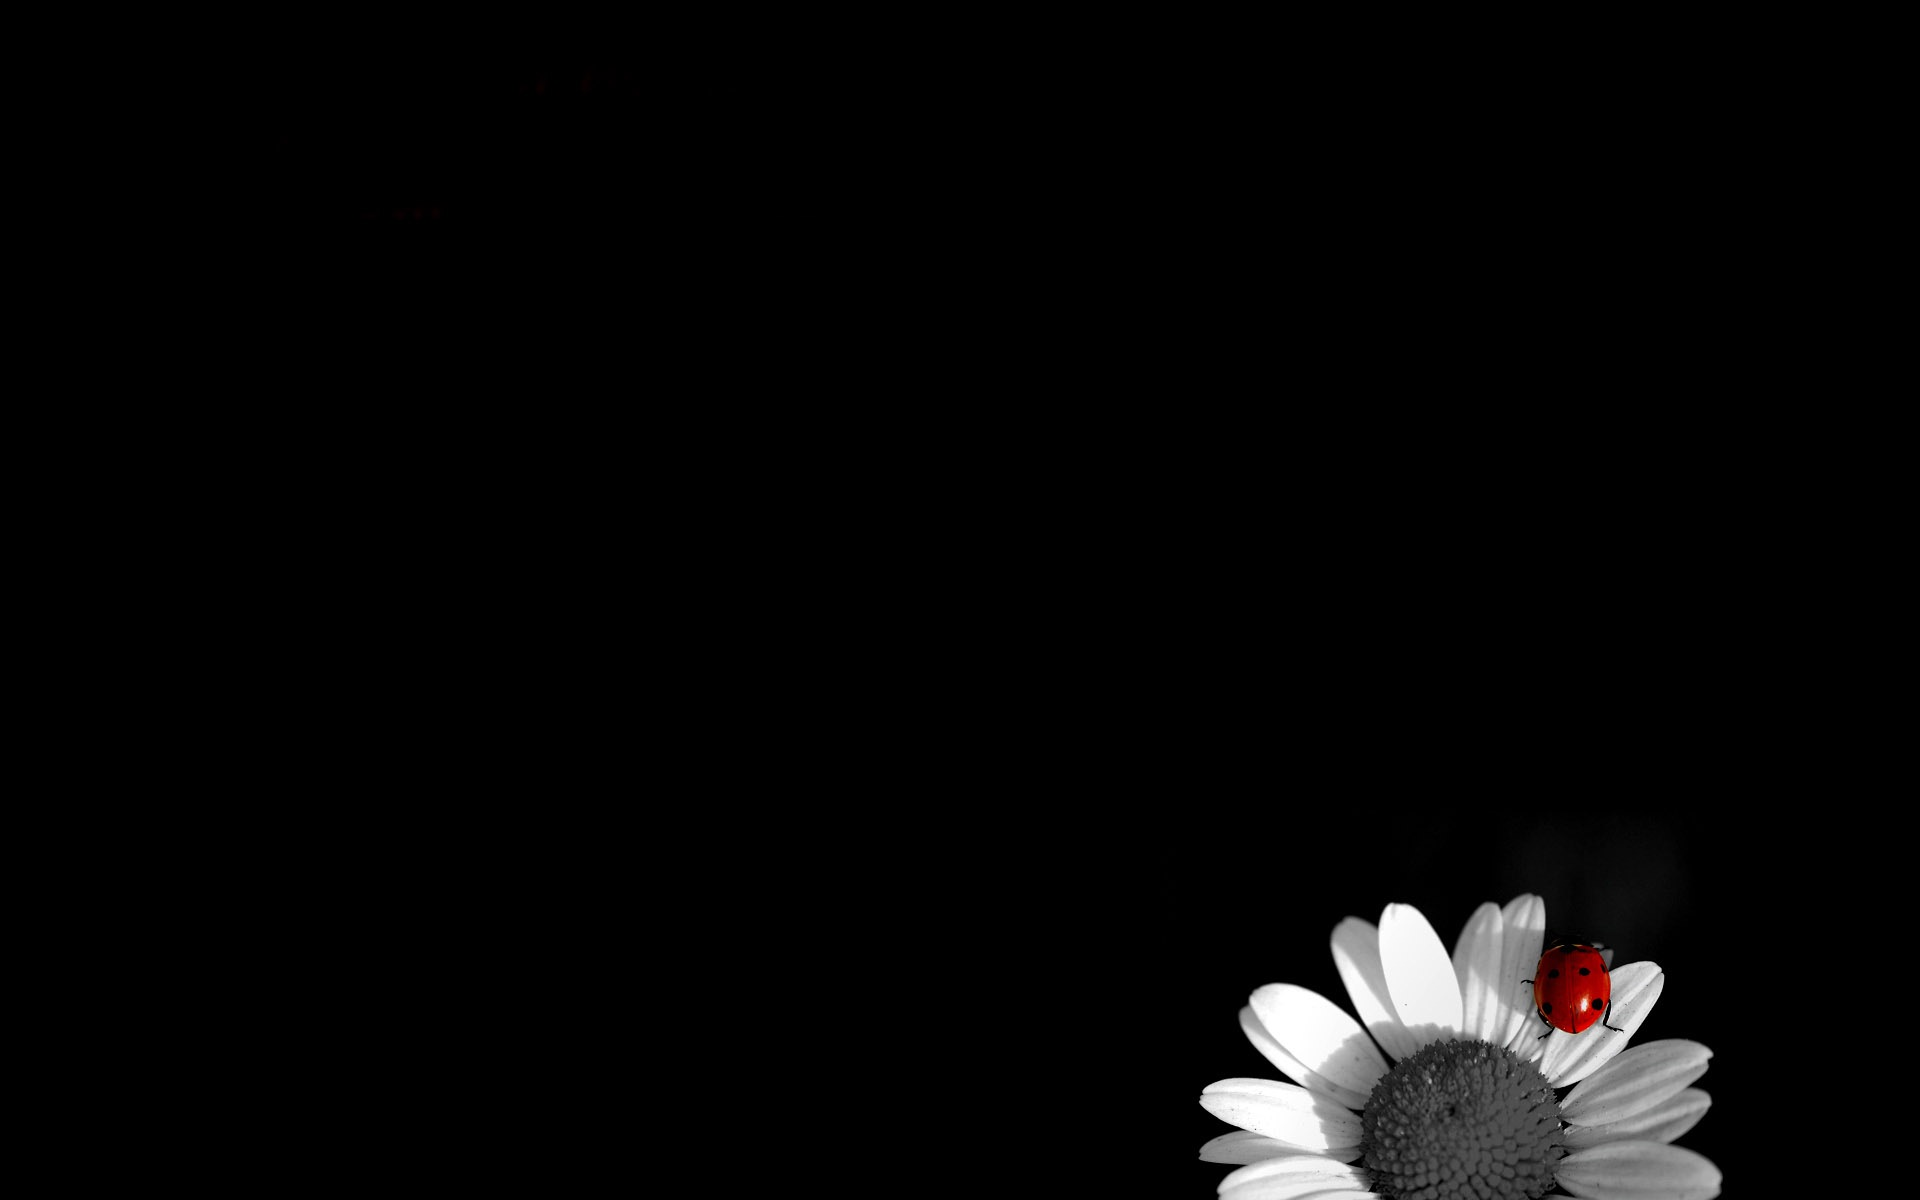 Black and white flowers wallpapers HD 1920x1200